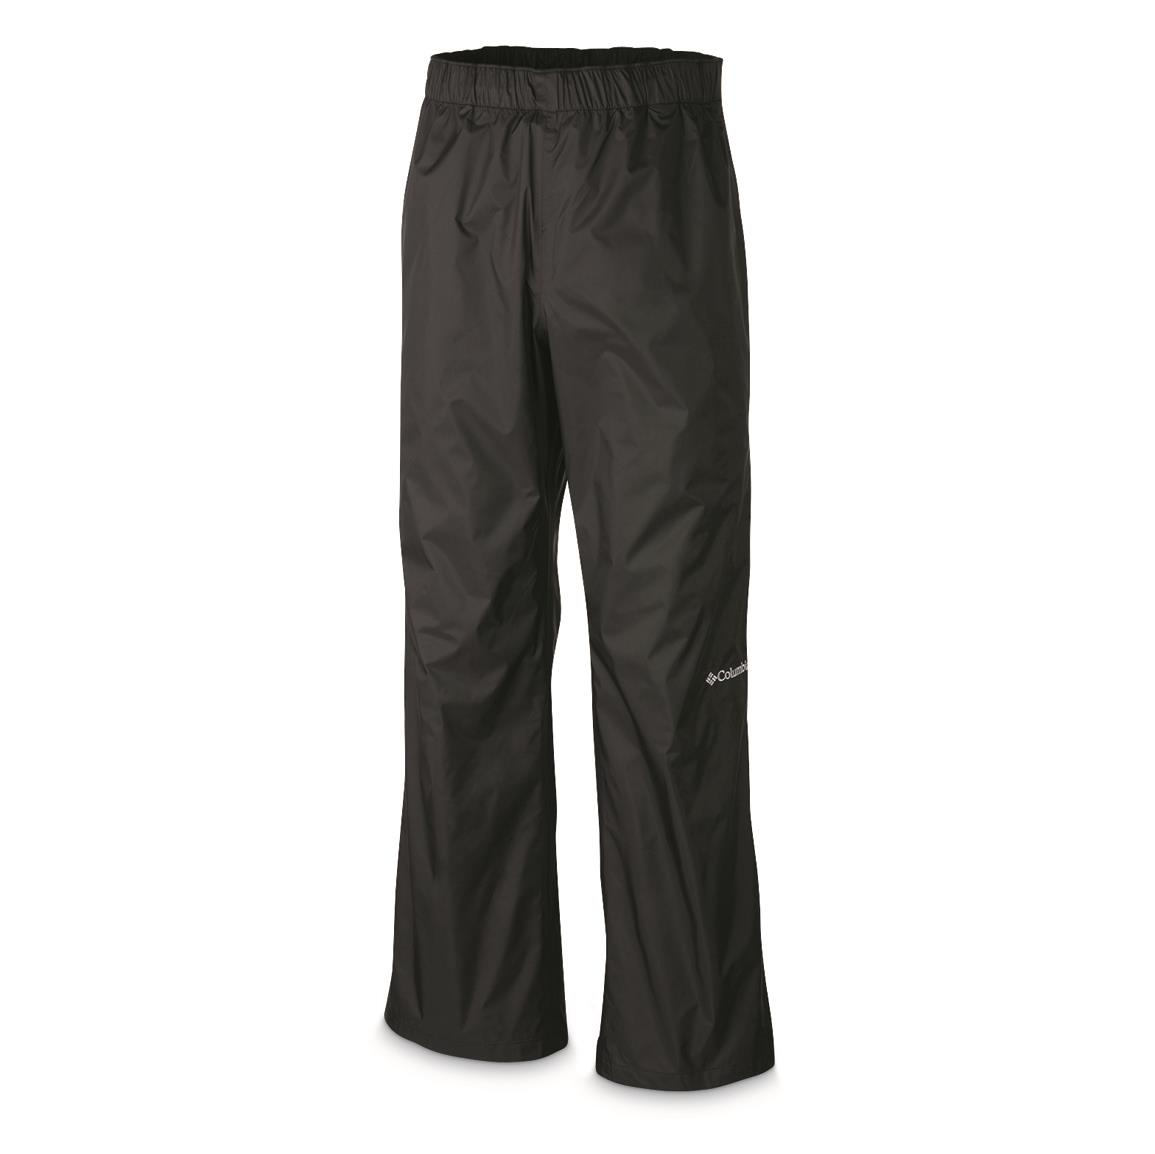 Columbia Men's Rebel Roamer Waterproof Pants, Black